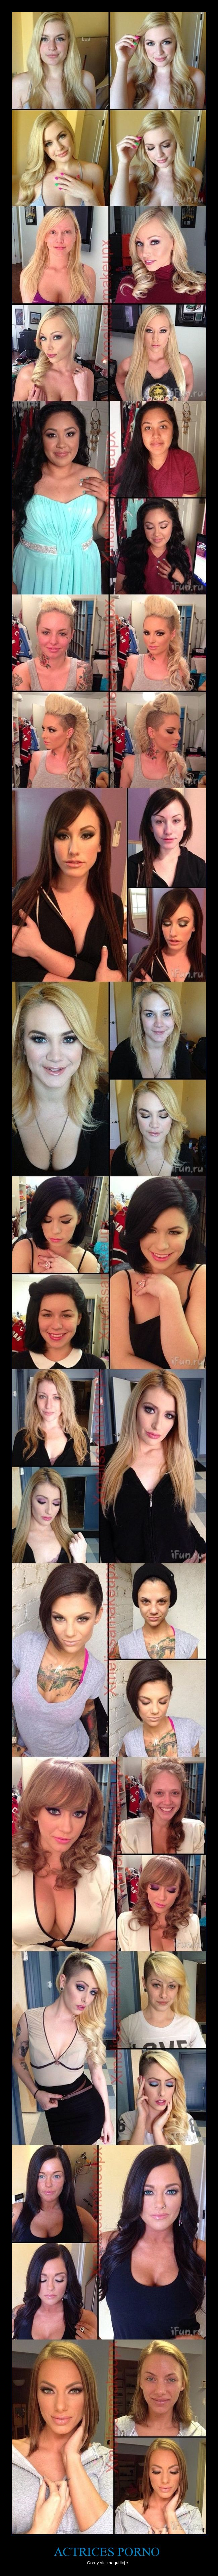 actrices,chicas,diferencias,maquillaje